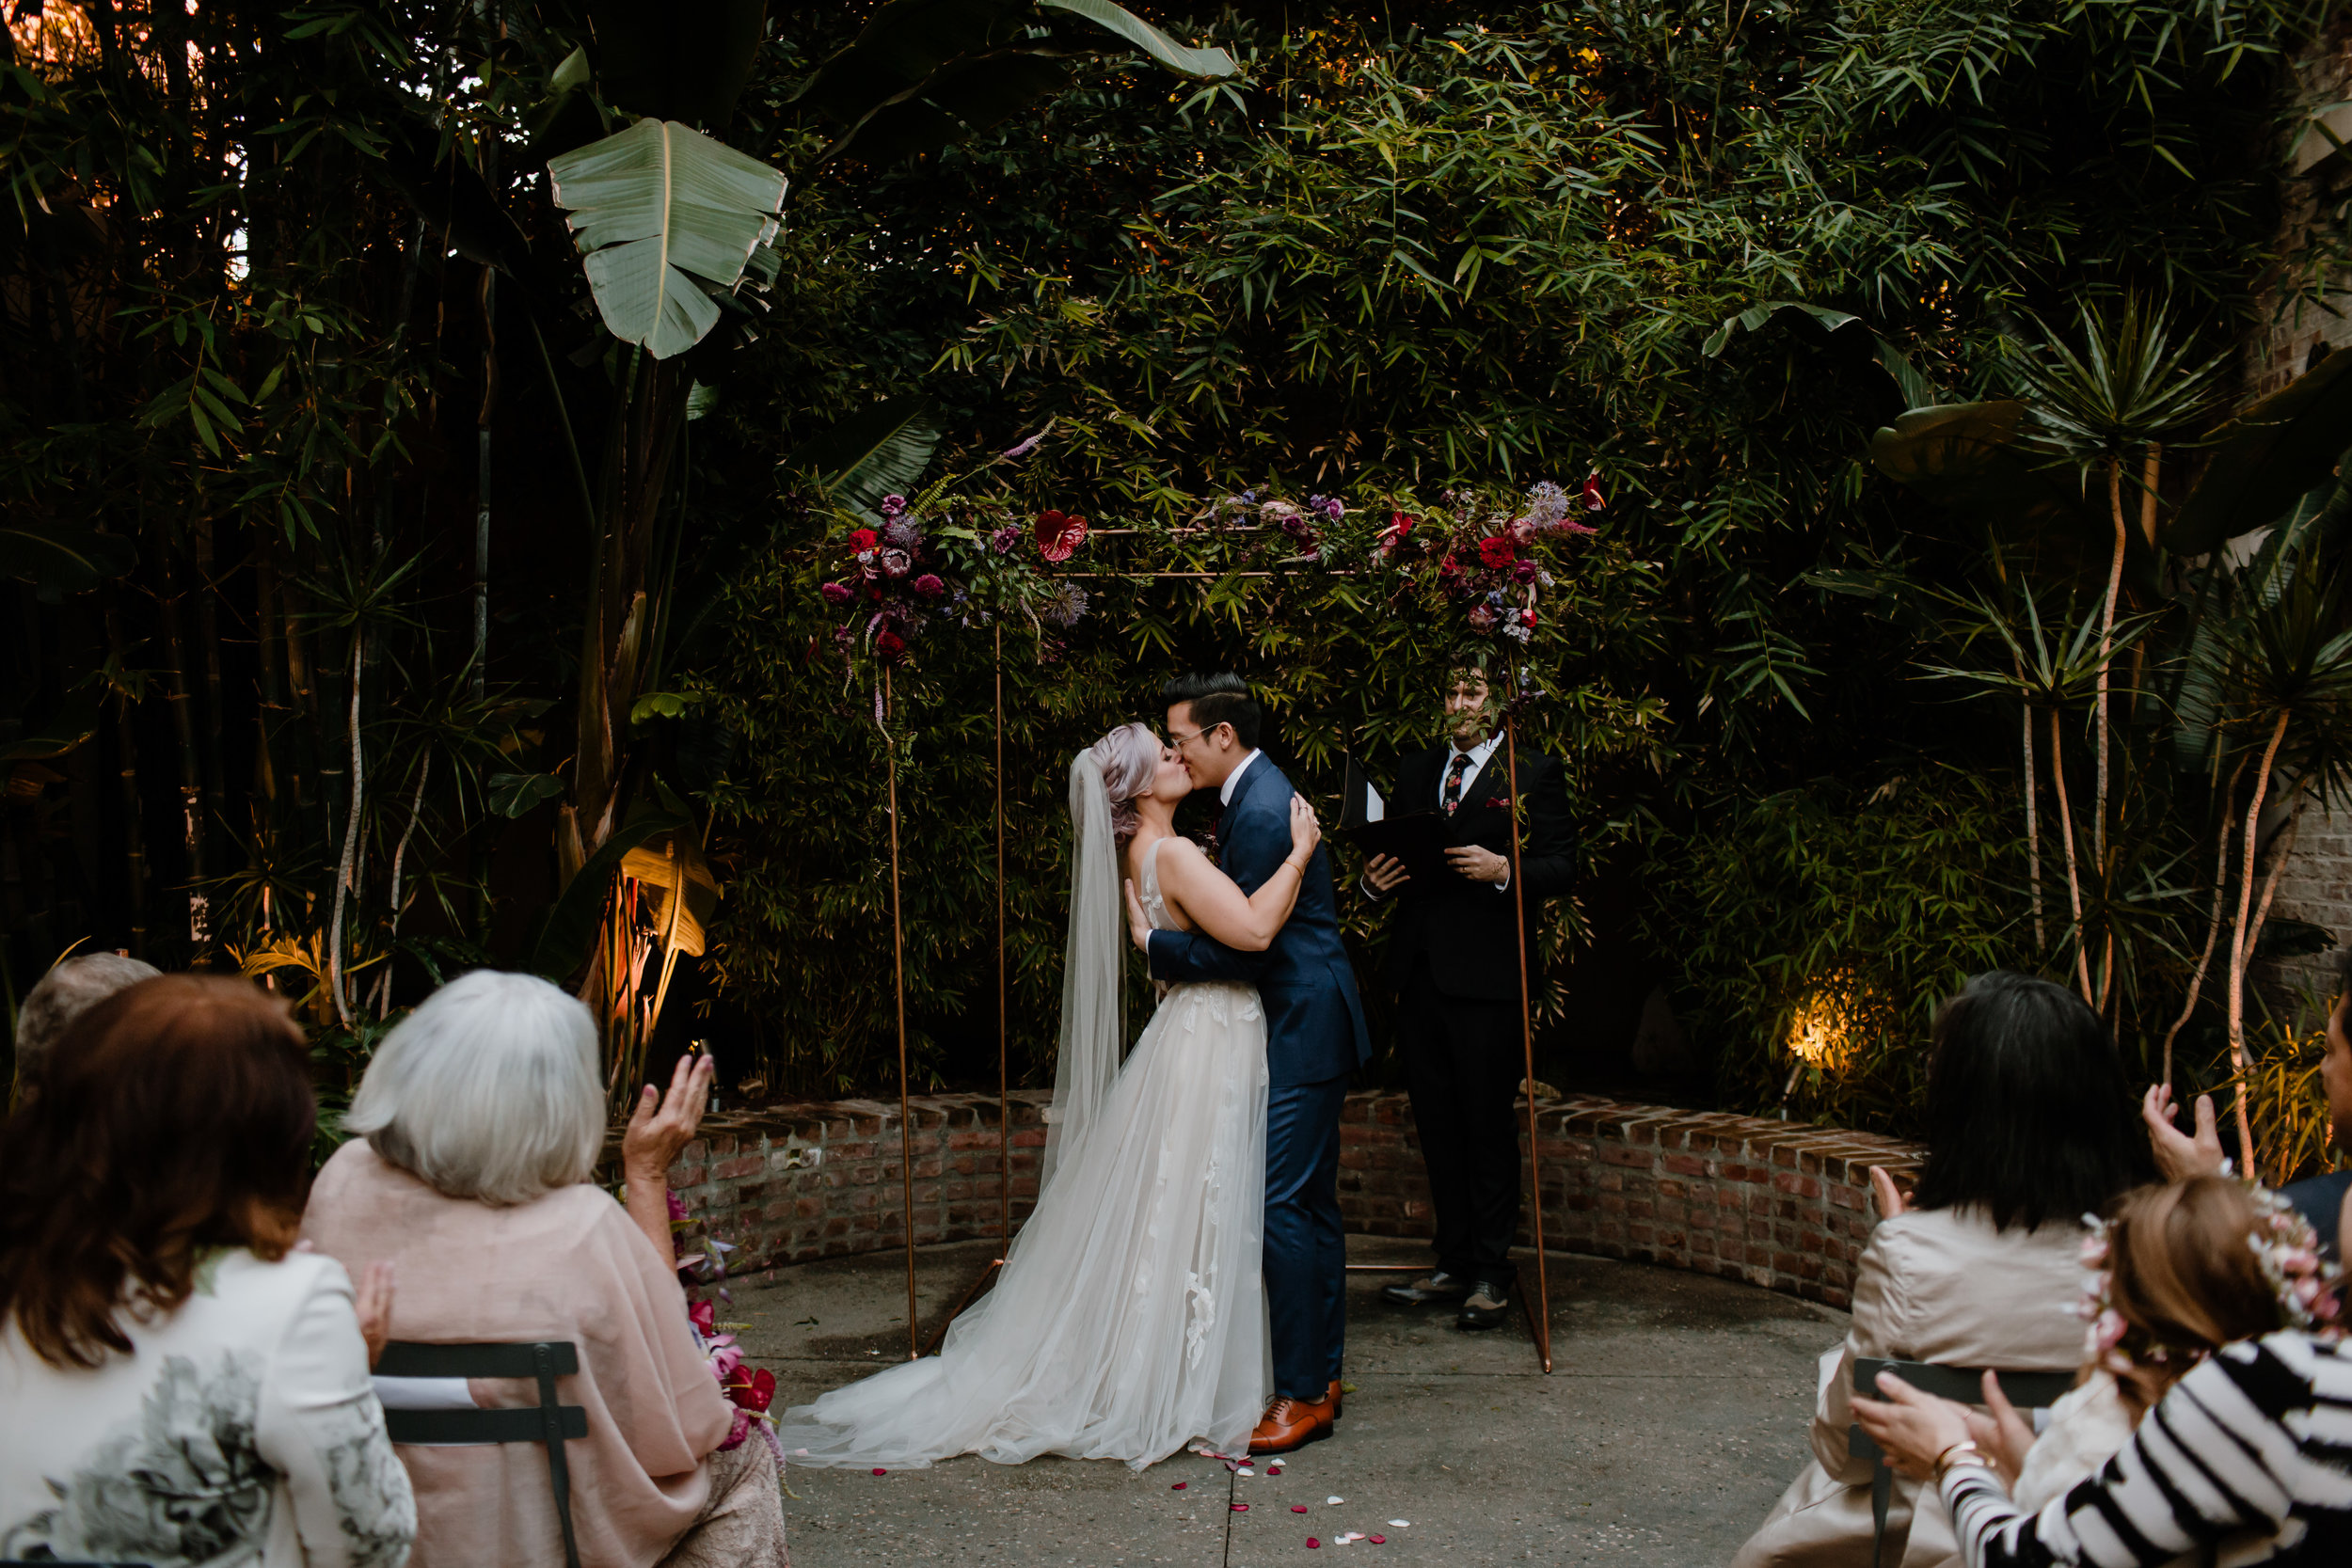 Gillian and Jon Wedding at Millwick - Los Angeles Arts District-41.jpg